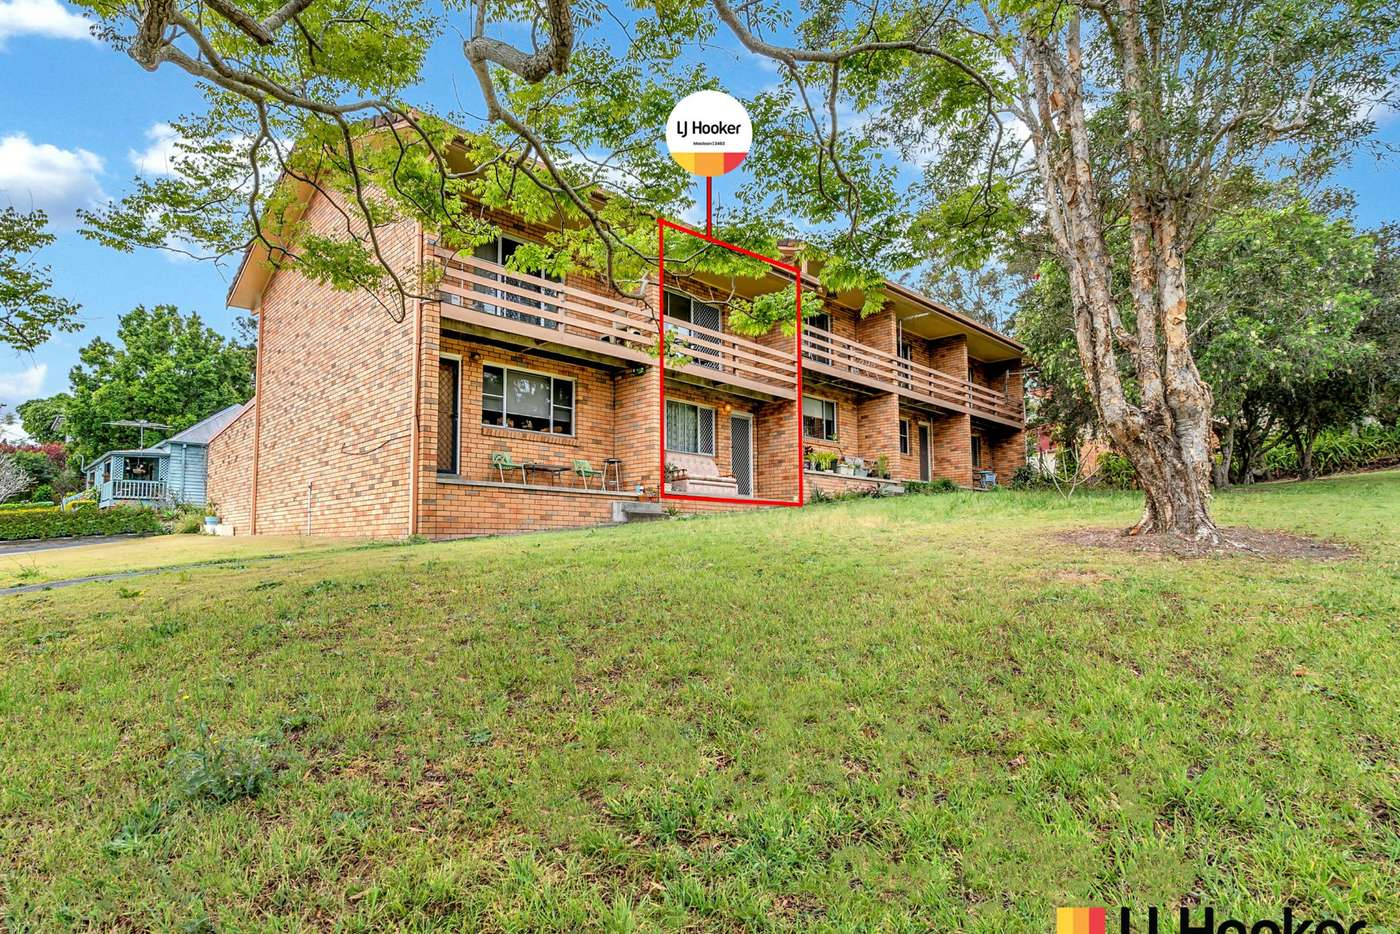 Main view of Homely flat listing, 2/31 Grafton Street, Maclean NSW 2463